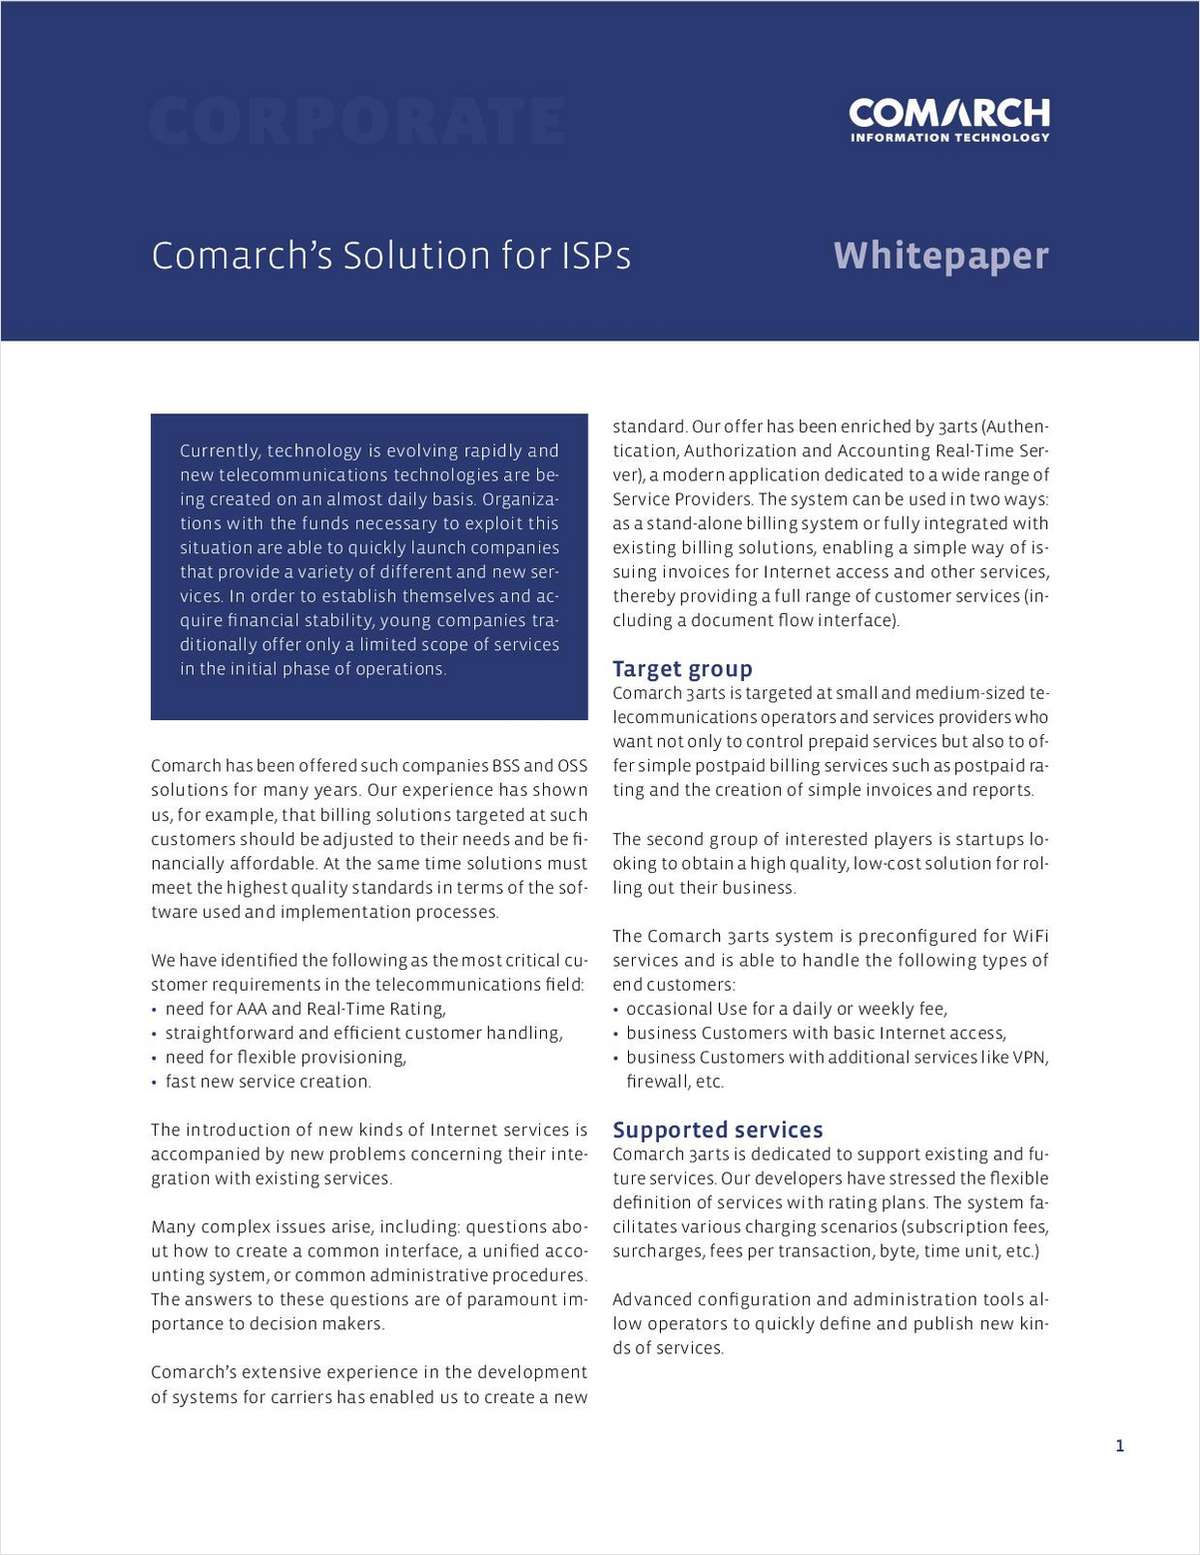 Comarch's Solution for ISPs